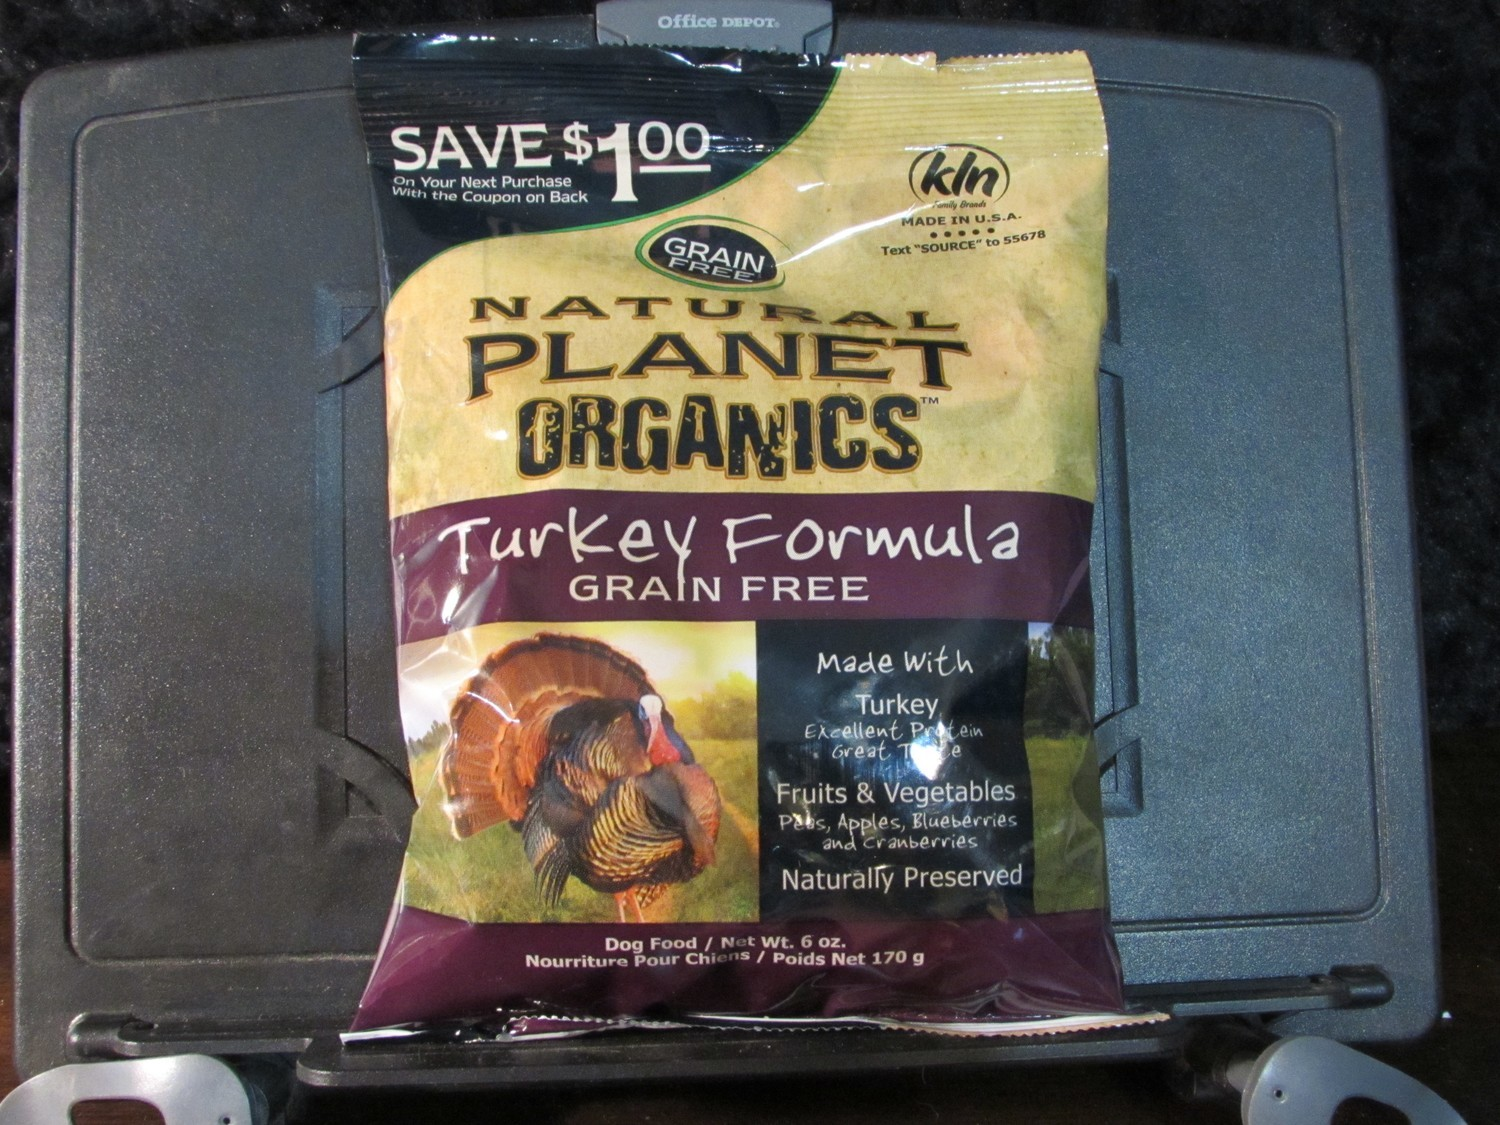 Natural Planet Organic Grain Free Turkey Dog 6 oz ($1.00 OFF Coupon) (5/18) (A.Q5)